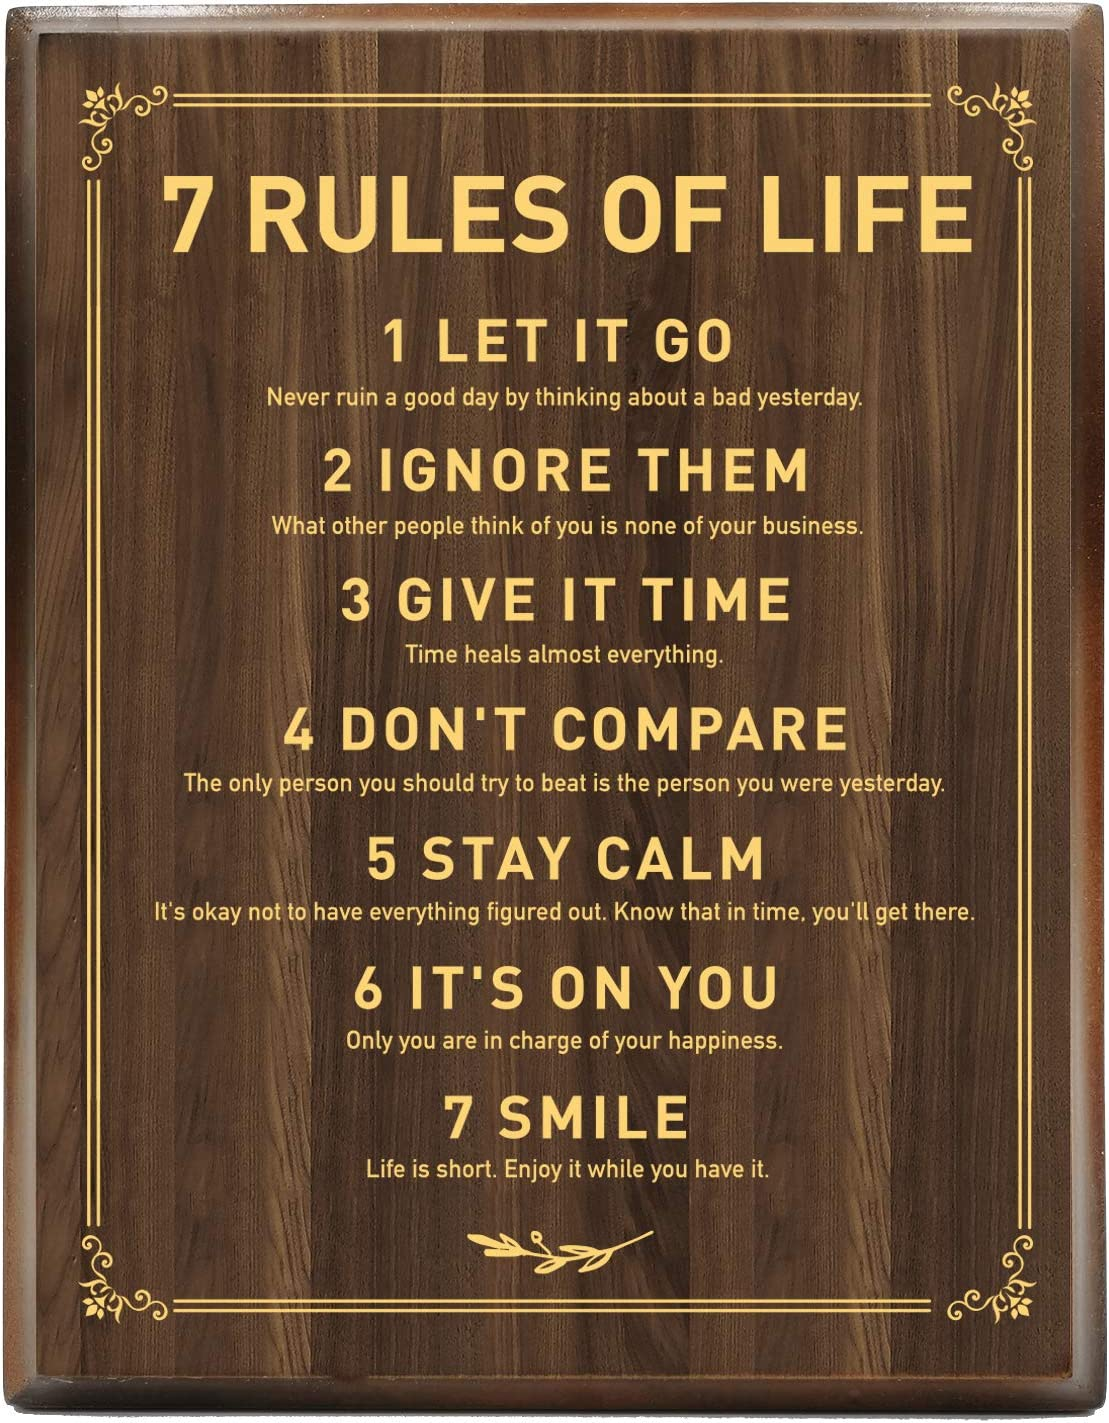 Yuzi-n Inspiring Motivational 7 Rules of Life Quotes Engraved Gold Wood Plaque Decorations Gifts for Home Living Room Bedroom Office Decor